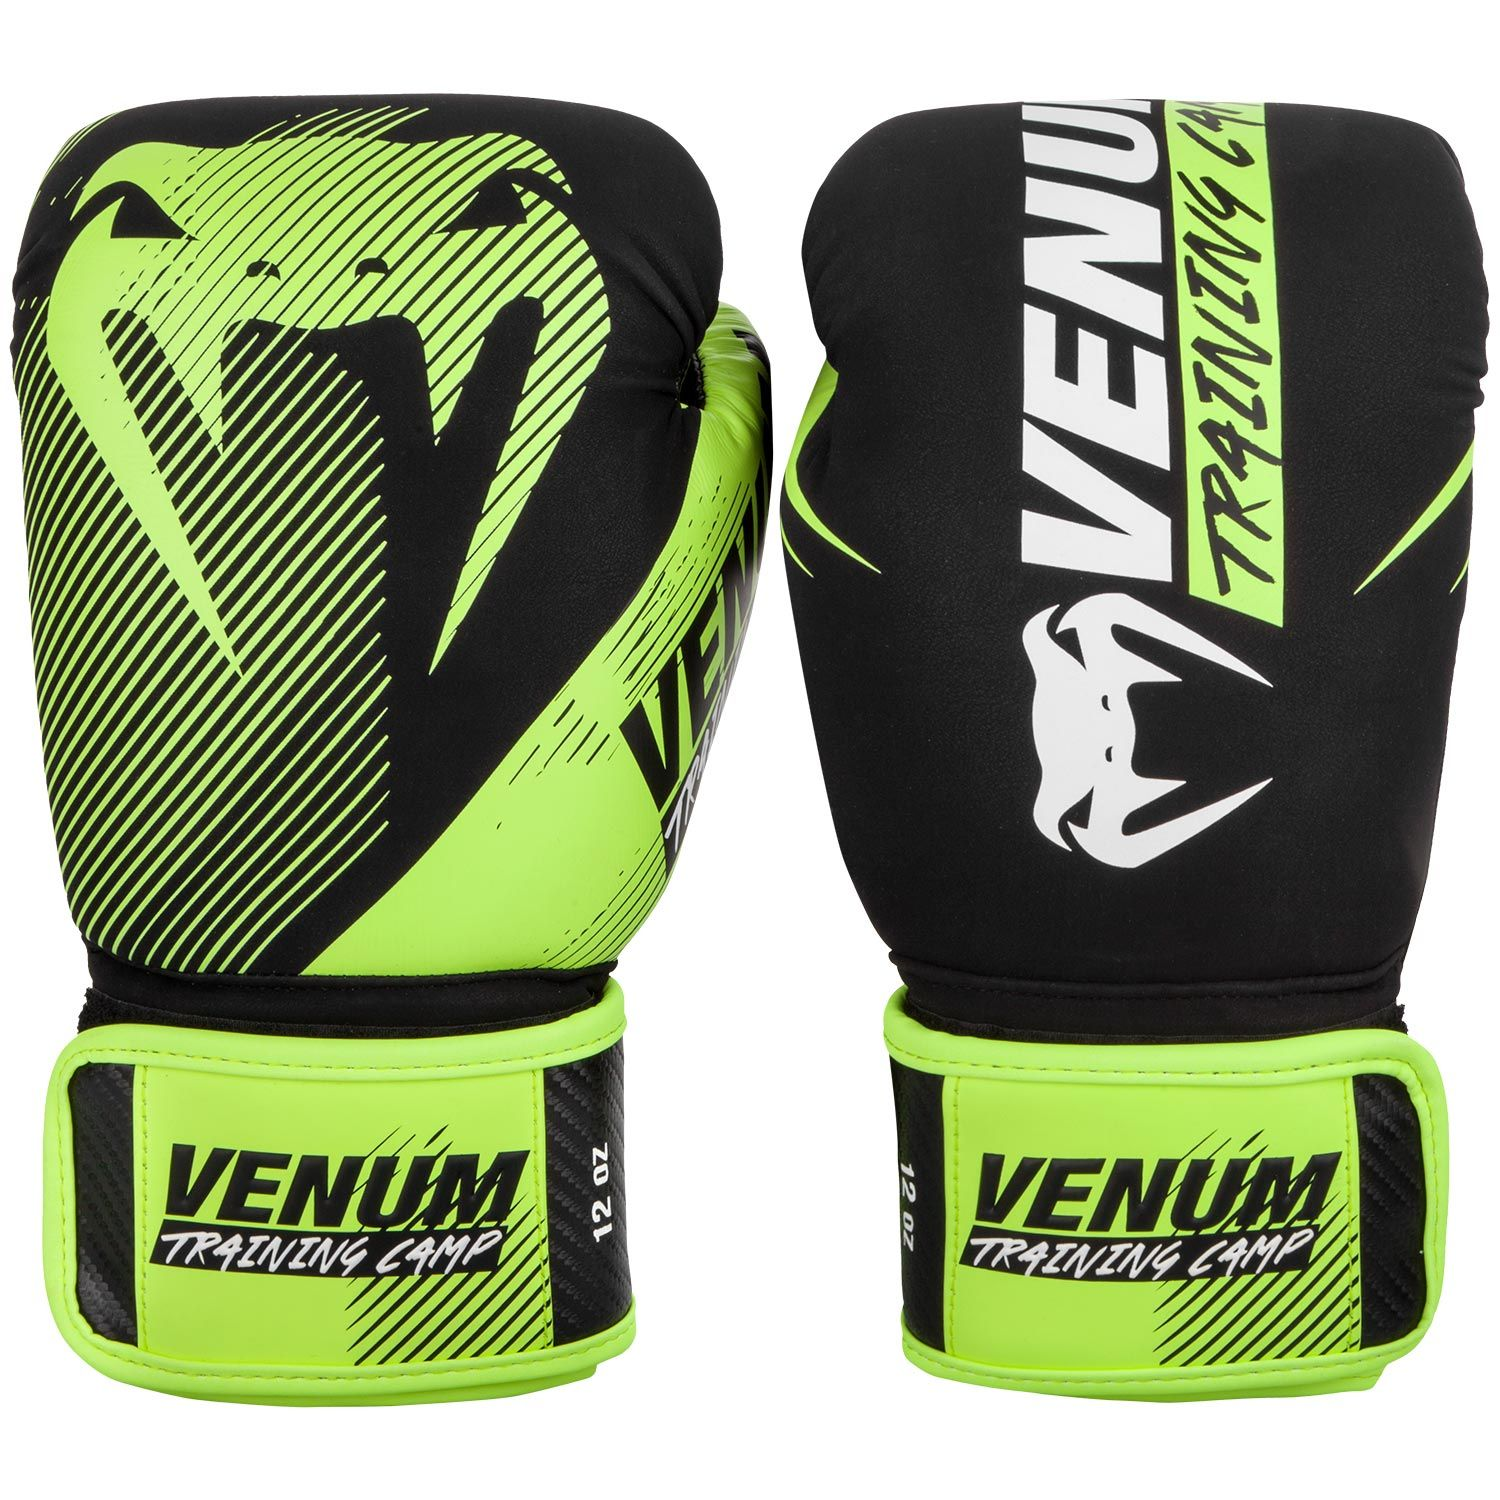 Venum Training Camp 2.0 Boxing Gloves - Black/Neo Yellow